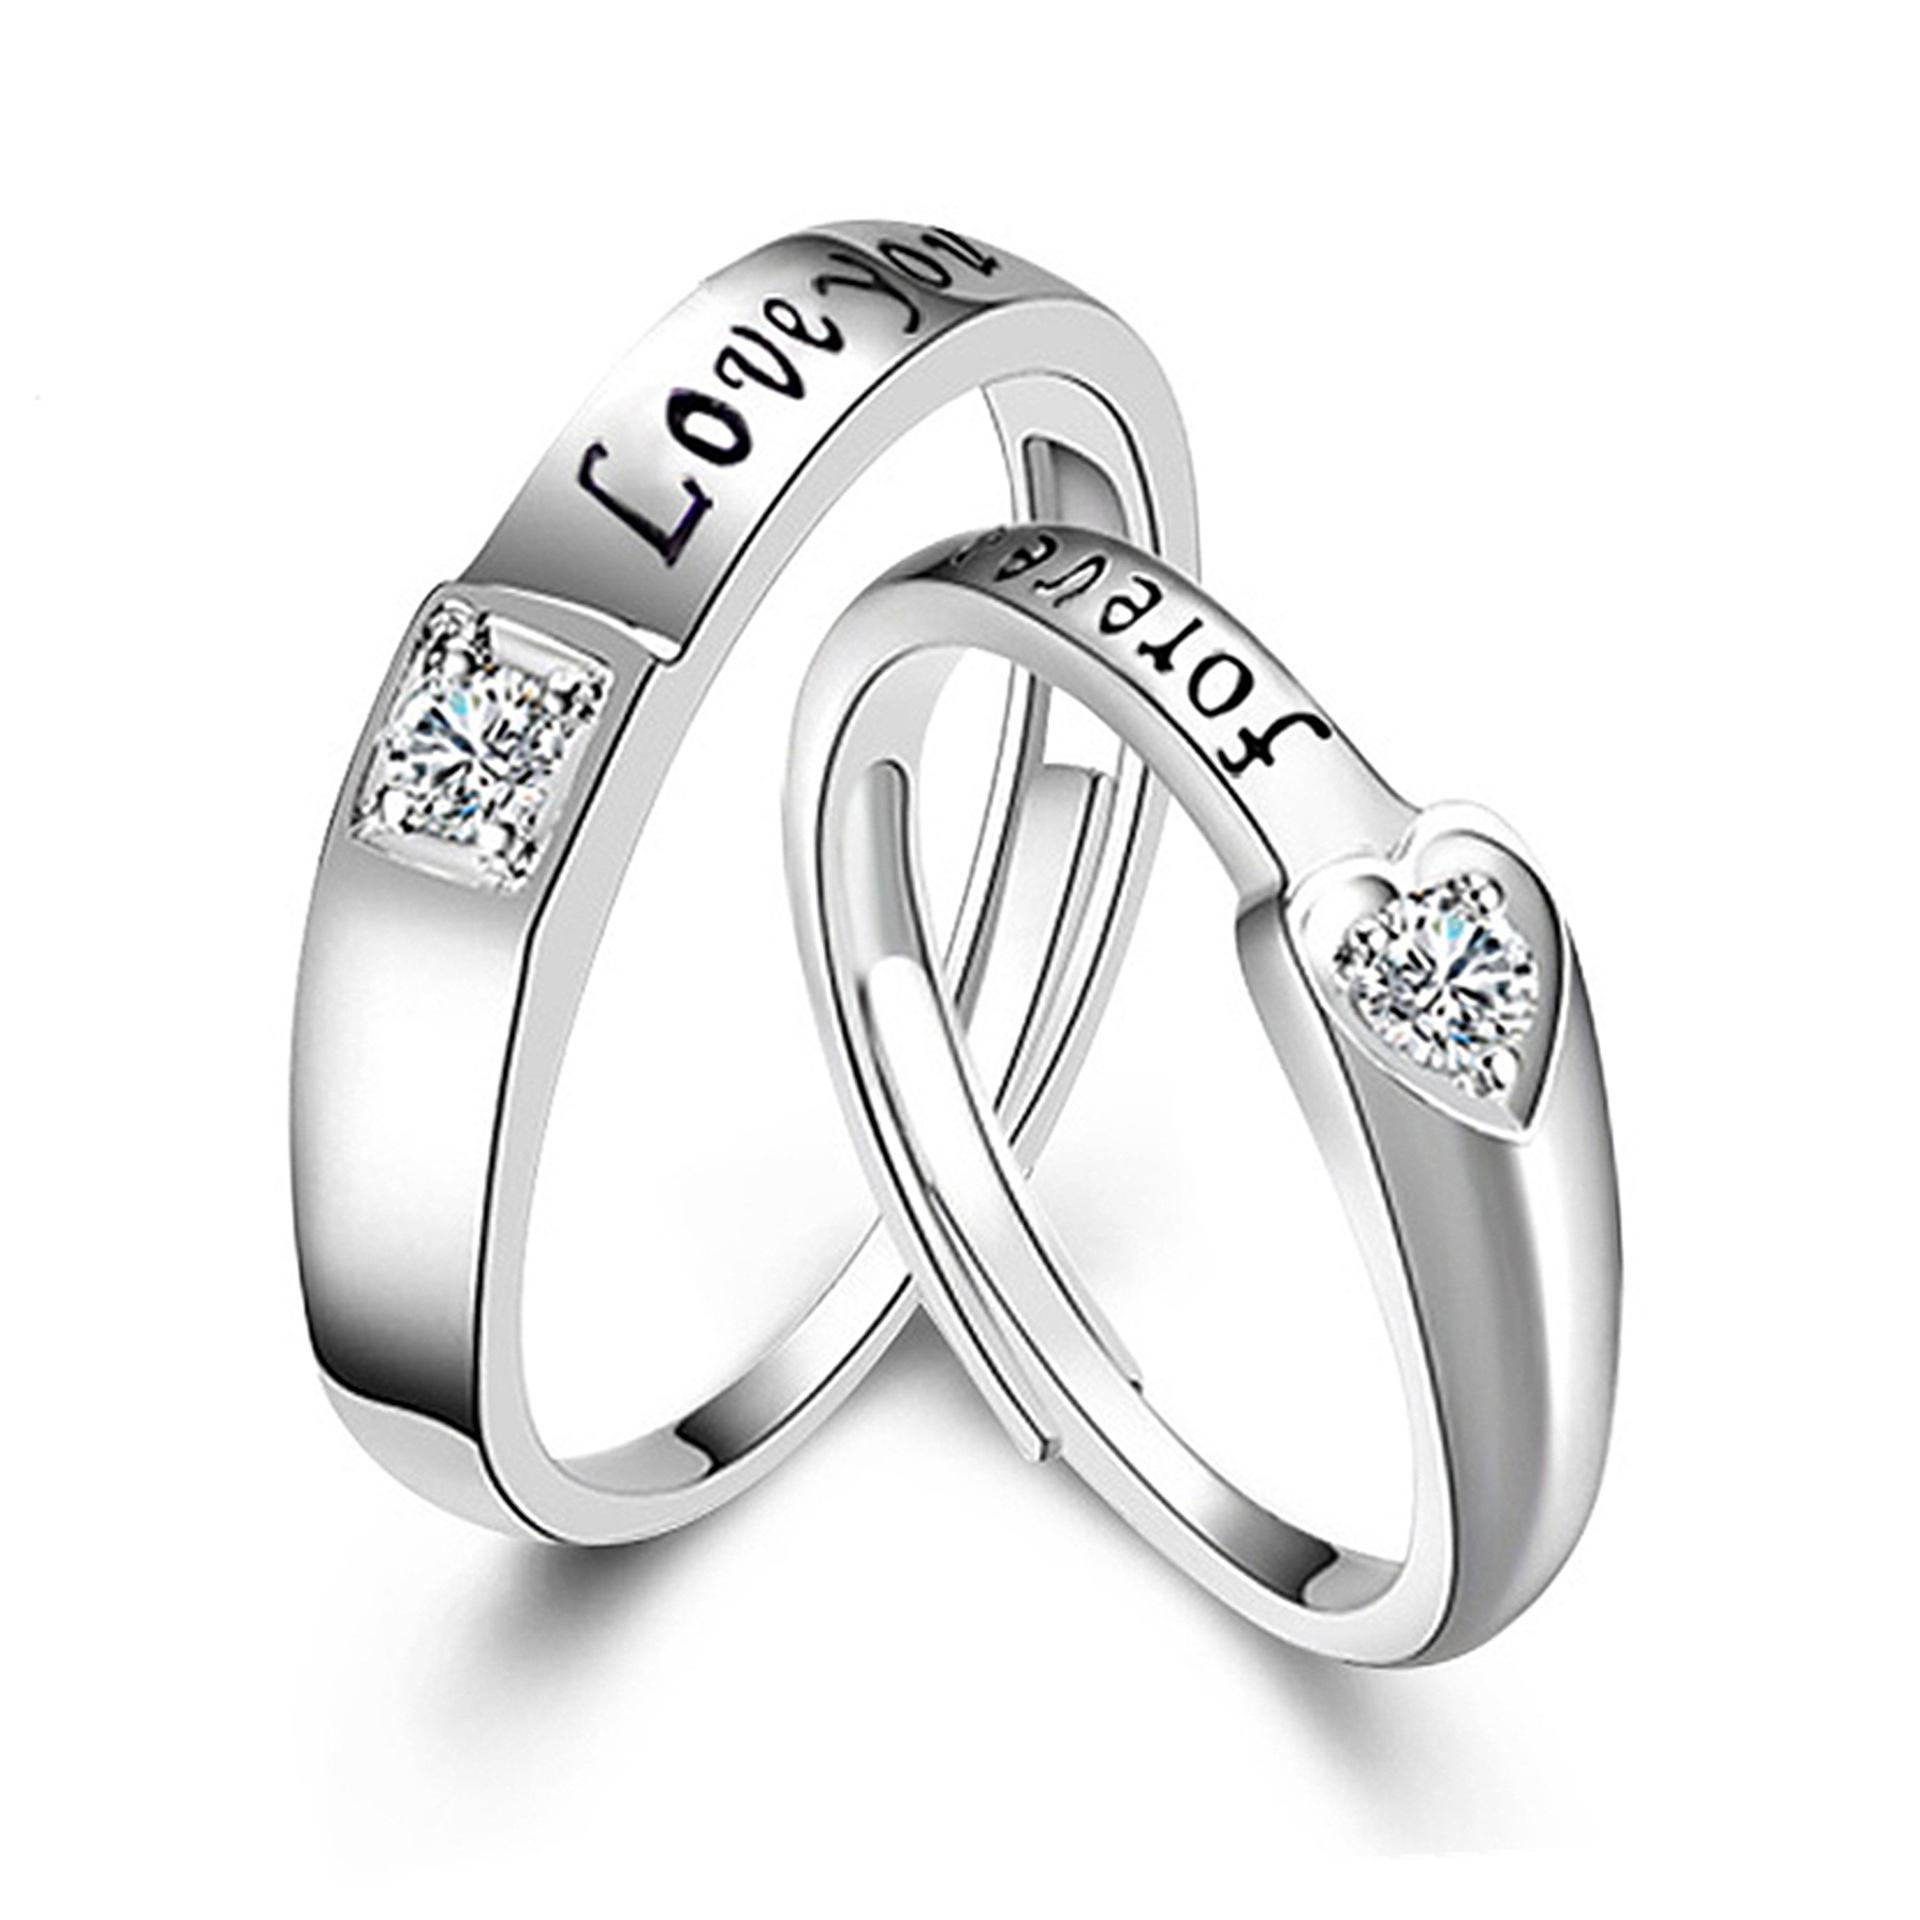 47b9c4c47 2019 One Couple Silver Ring Plated Platinum Pair Of Men And Women Korean  Fashion Opening Wedding Ring Creative Jewelry From Wzflove, $7.04    DHgate.Com